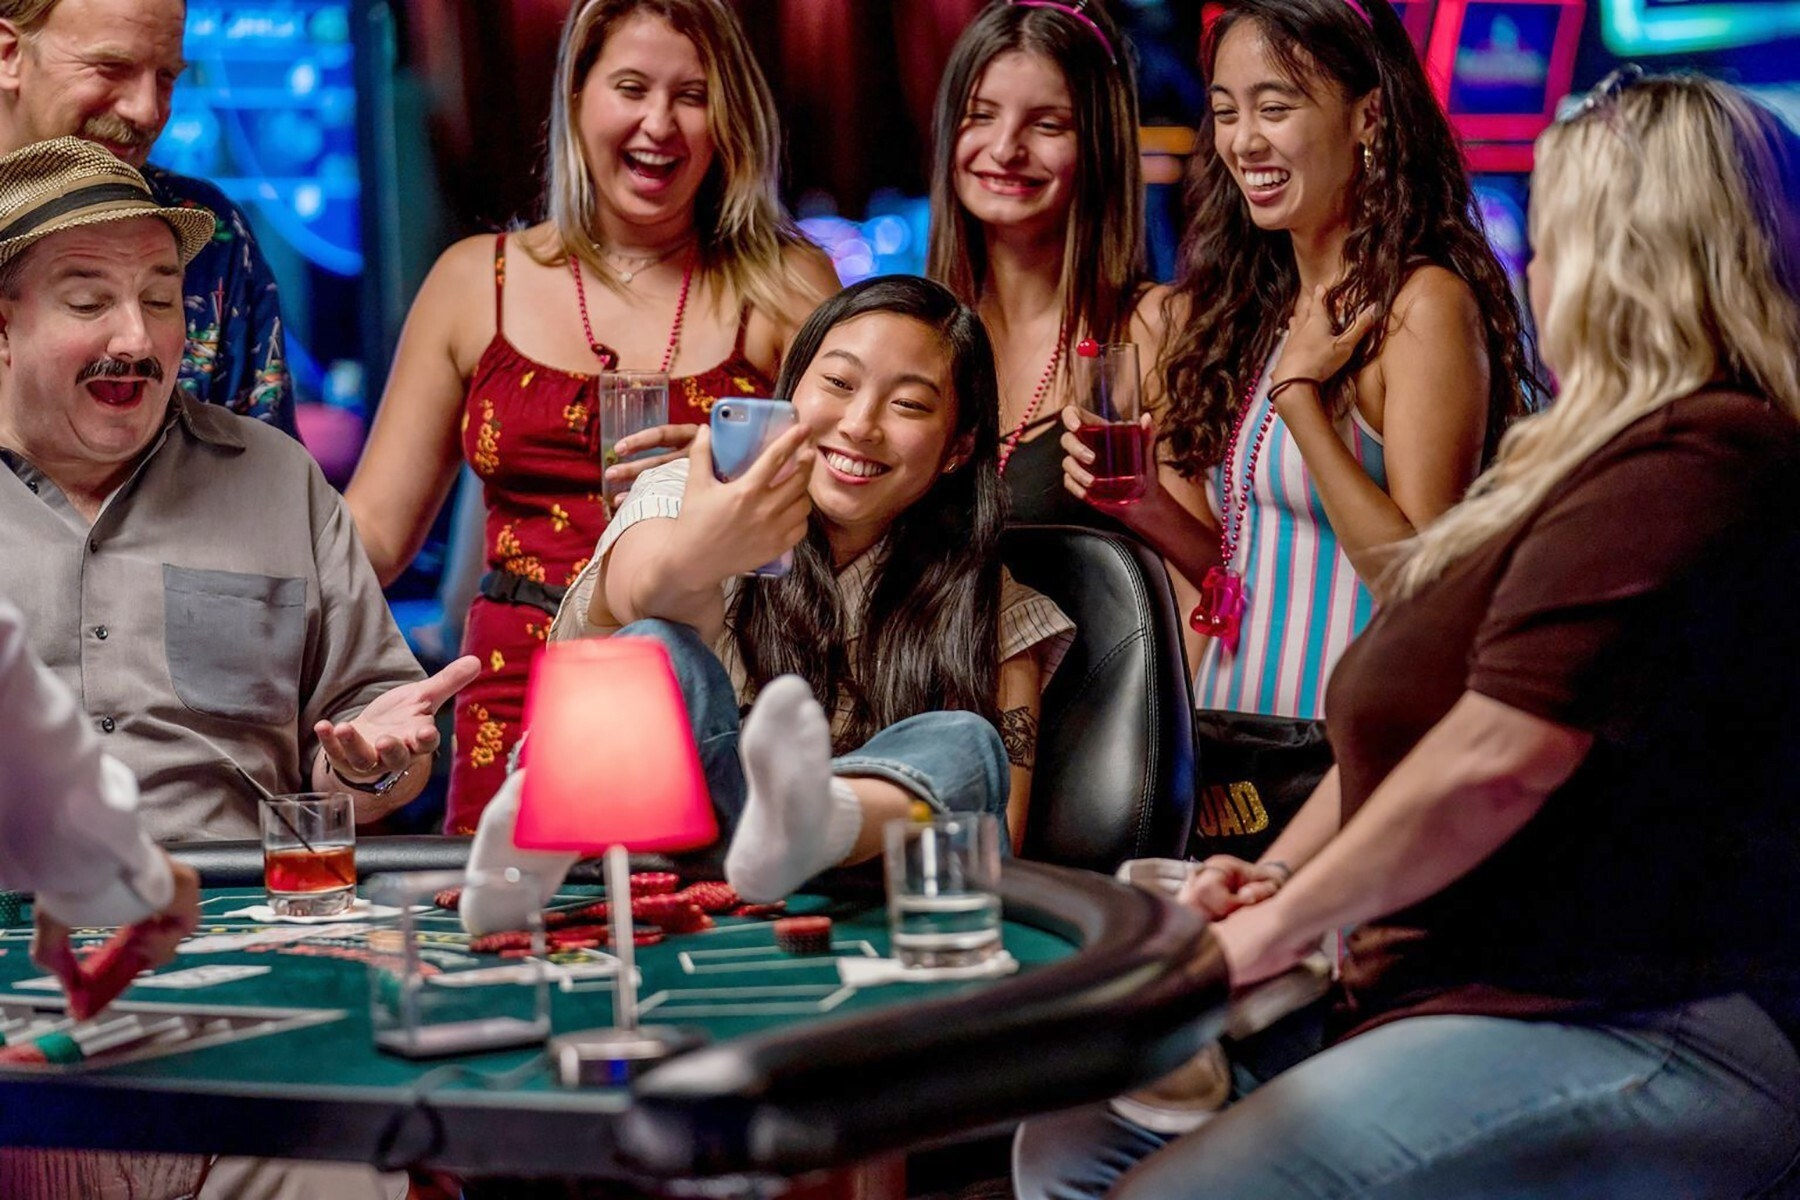 Awkwafine smiling with her feet up on a poker table taking a selfie with three people